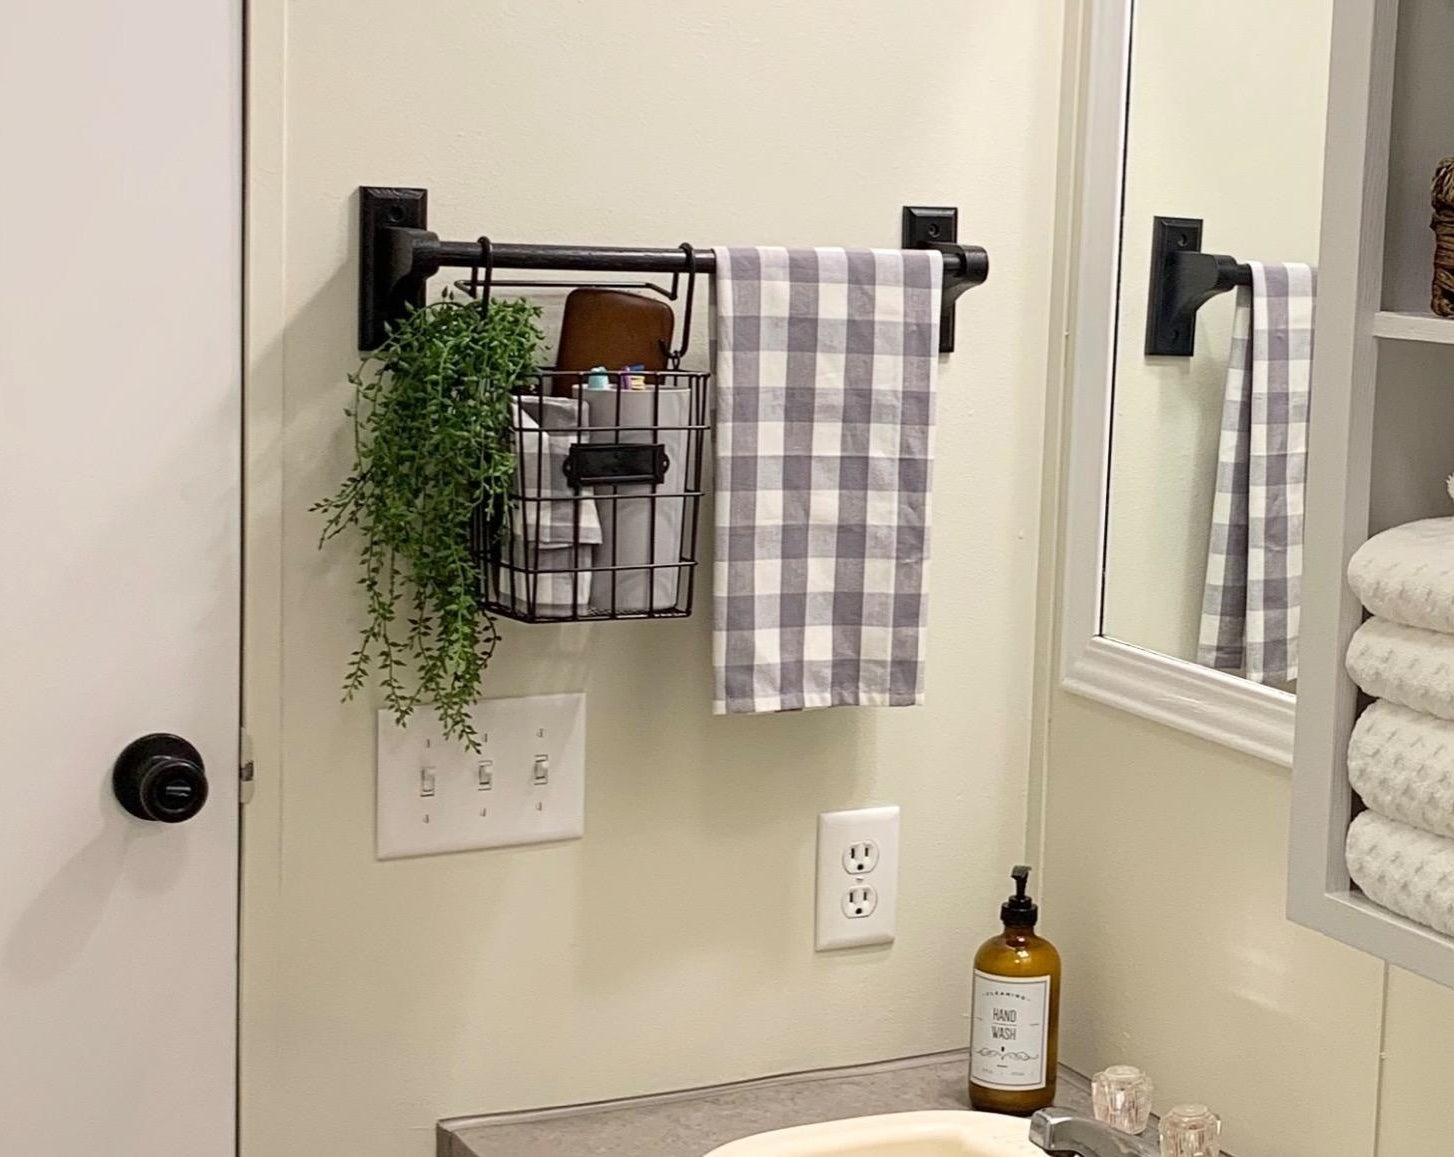 The basket hung from a towel bar and holding a variety of items as well as a plant